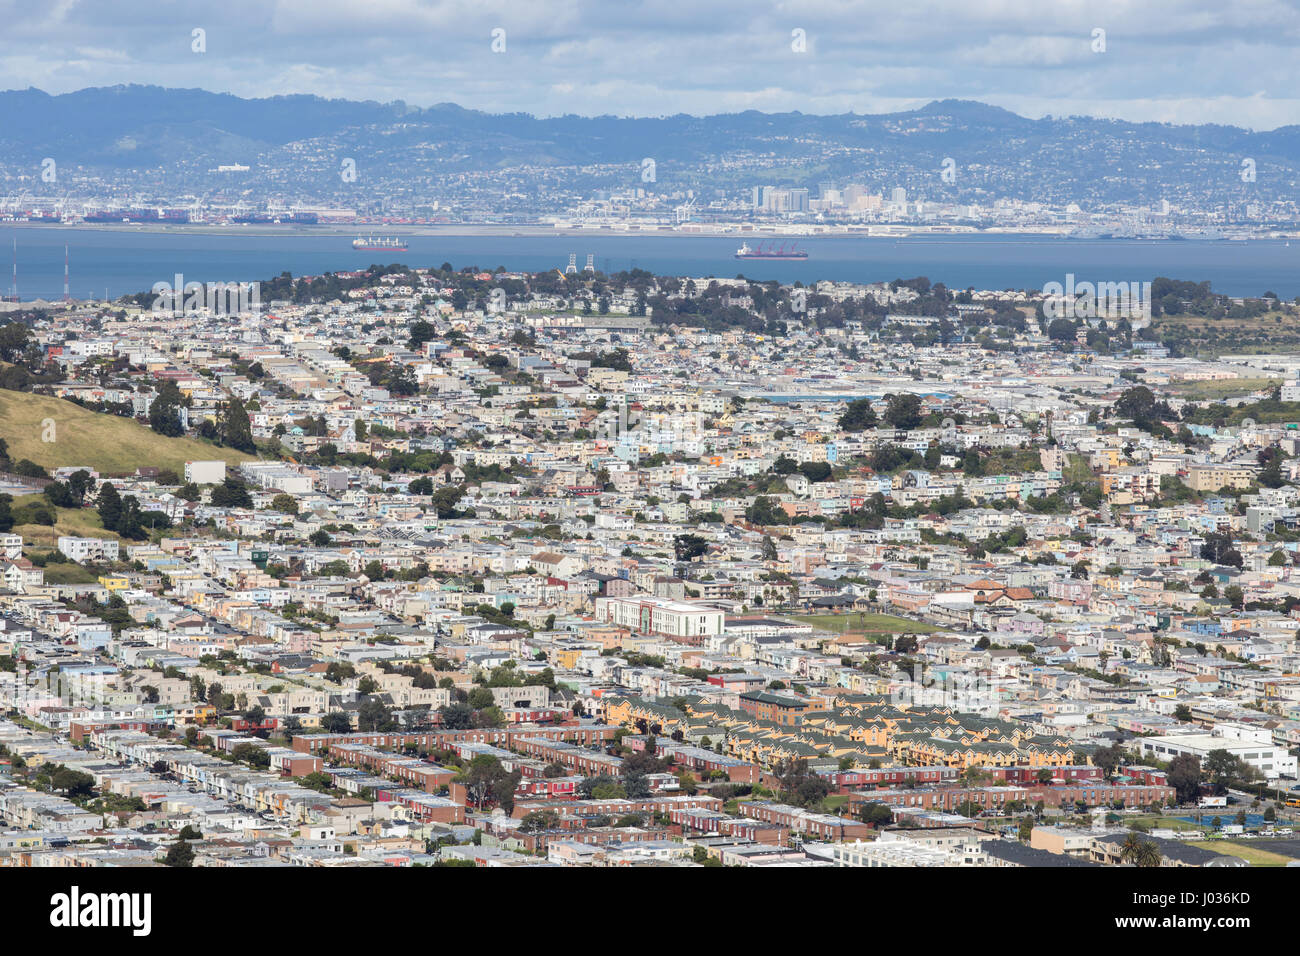 Aerial View of Daly City and Brisbane from San Bruno Mountain State Park. - Stock Image